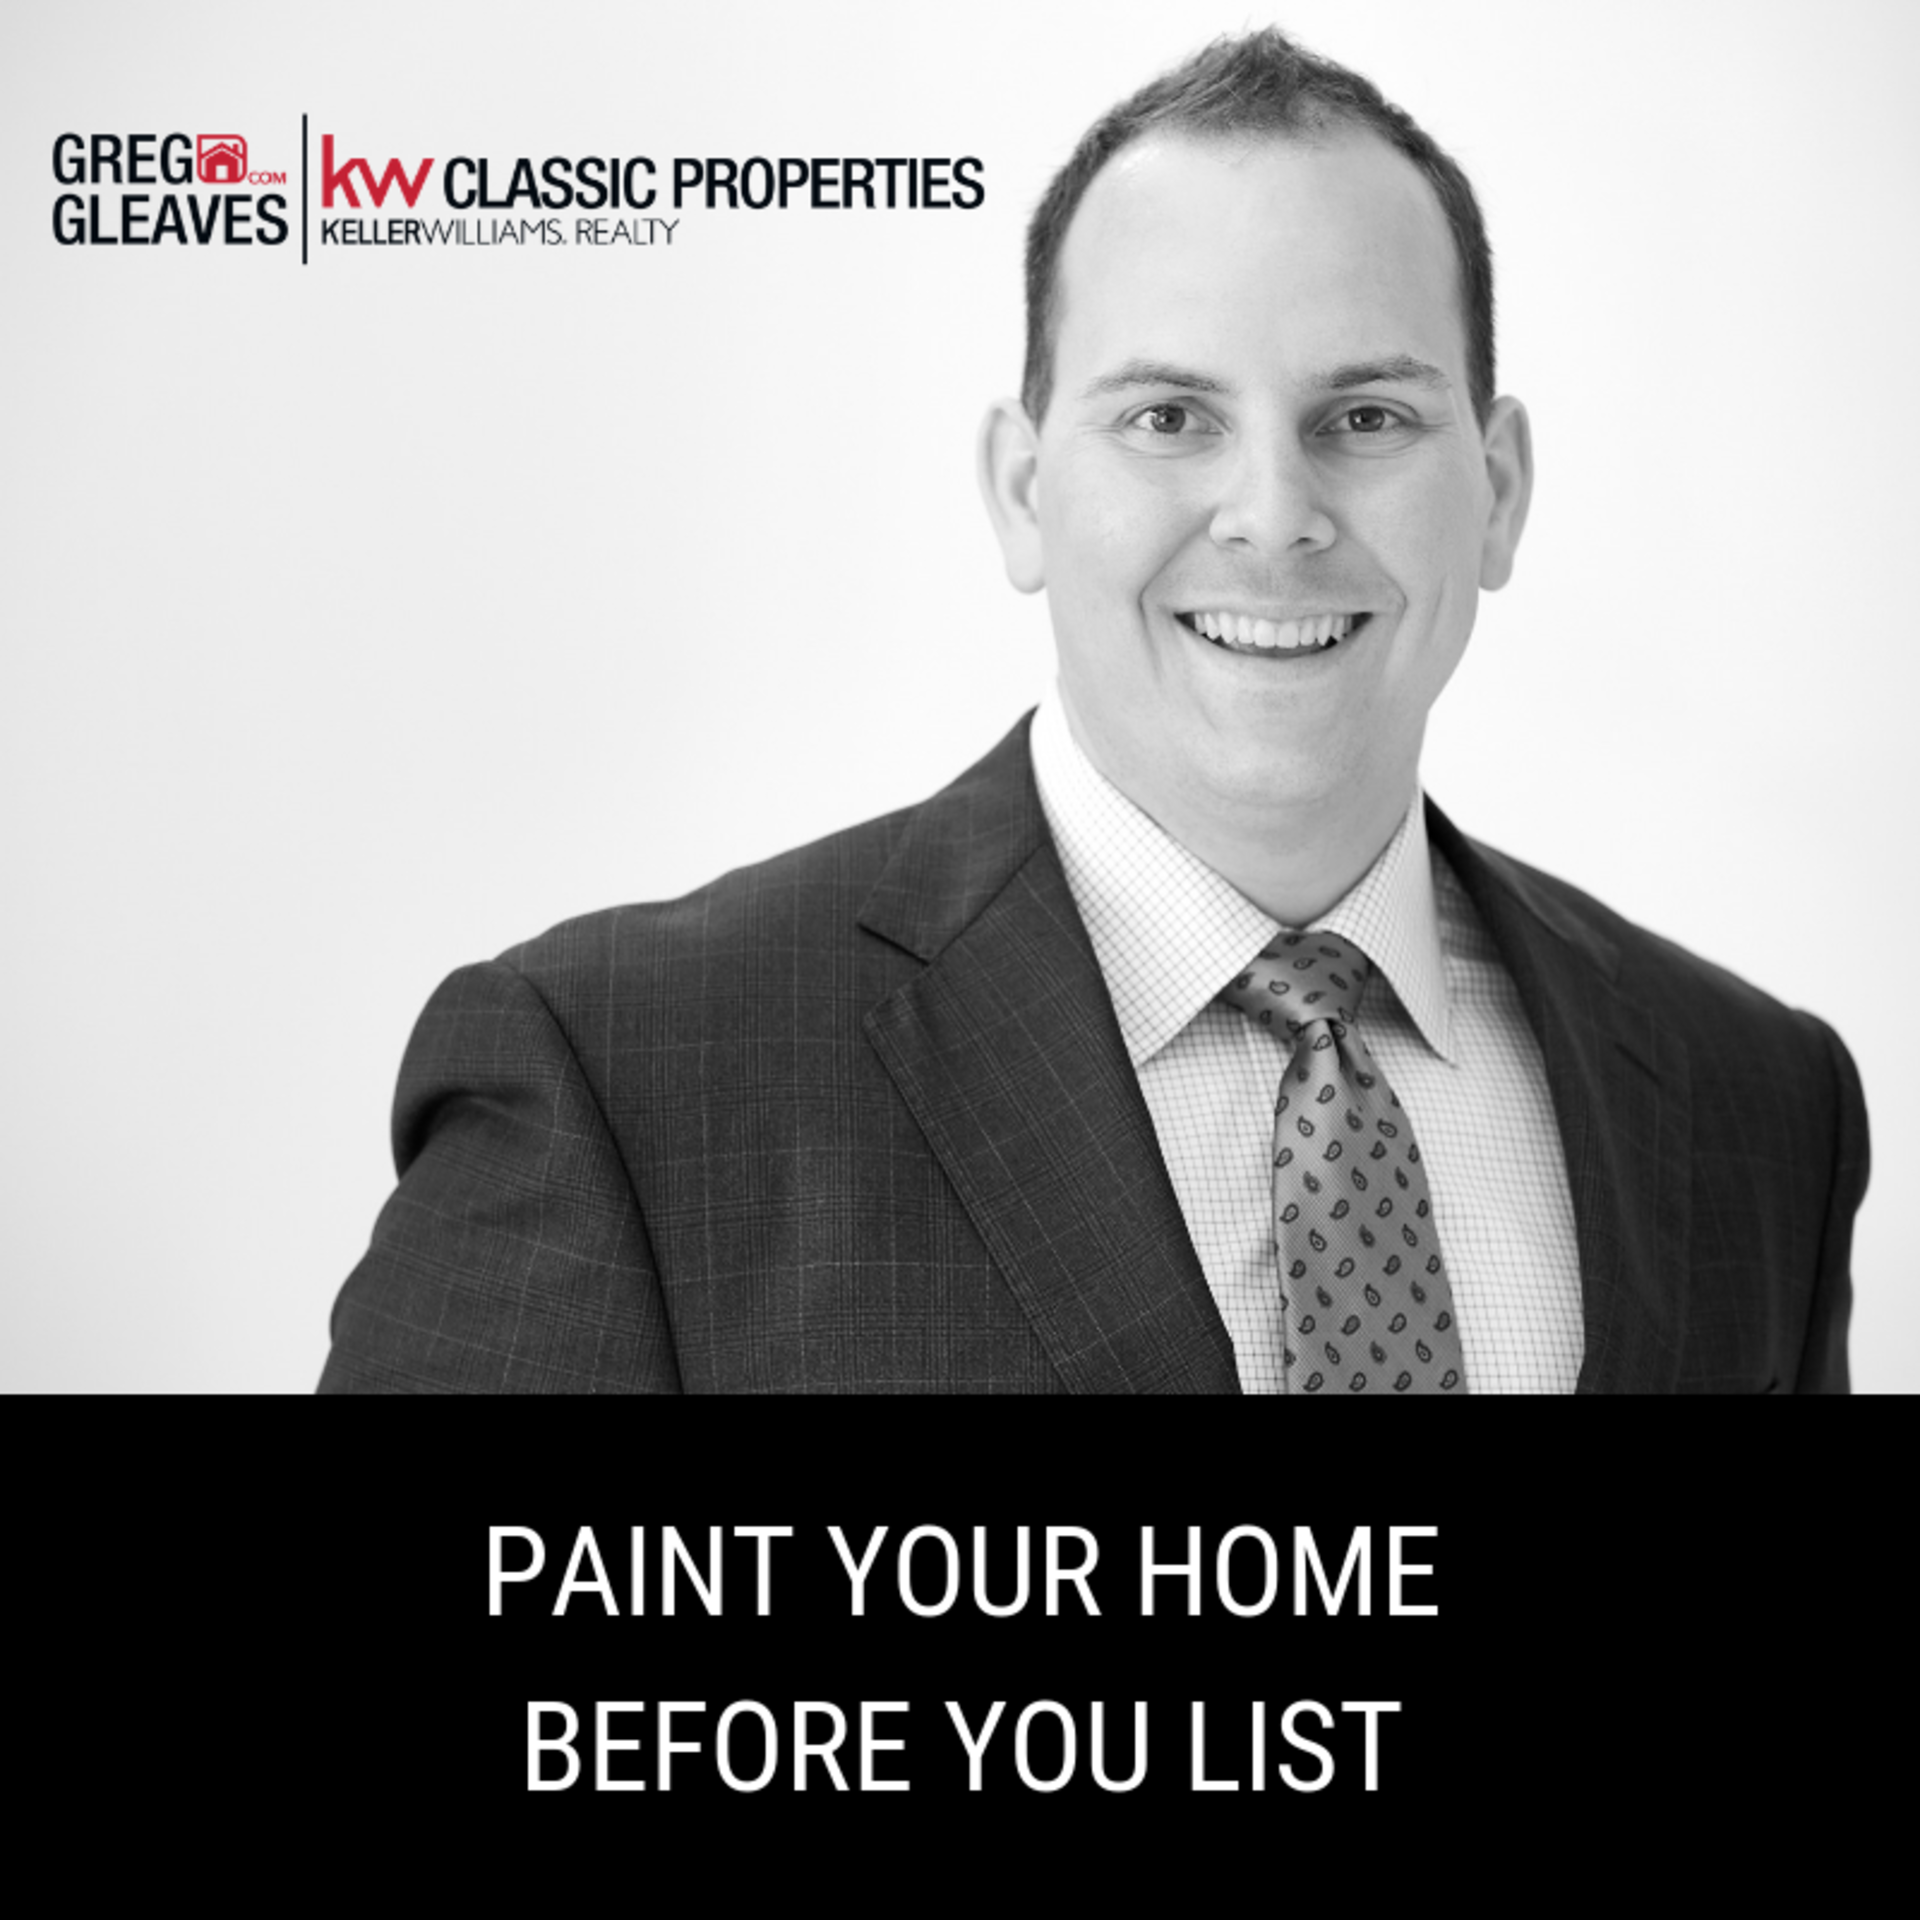 Paint Your Home Before You List